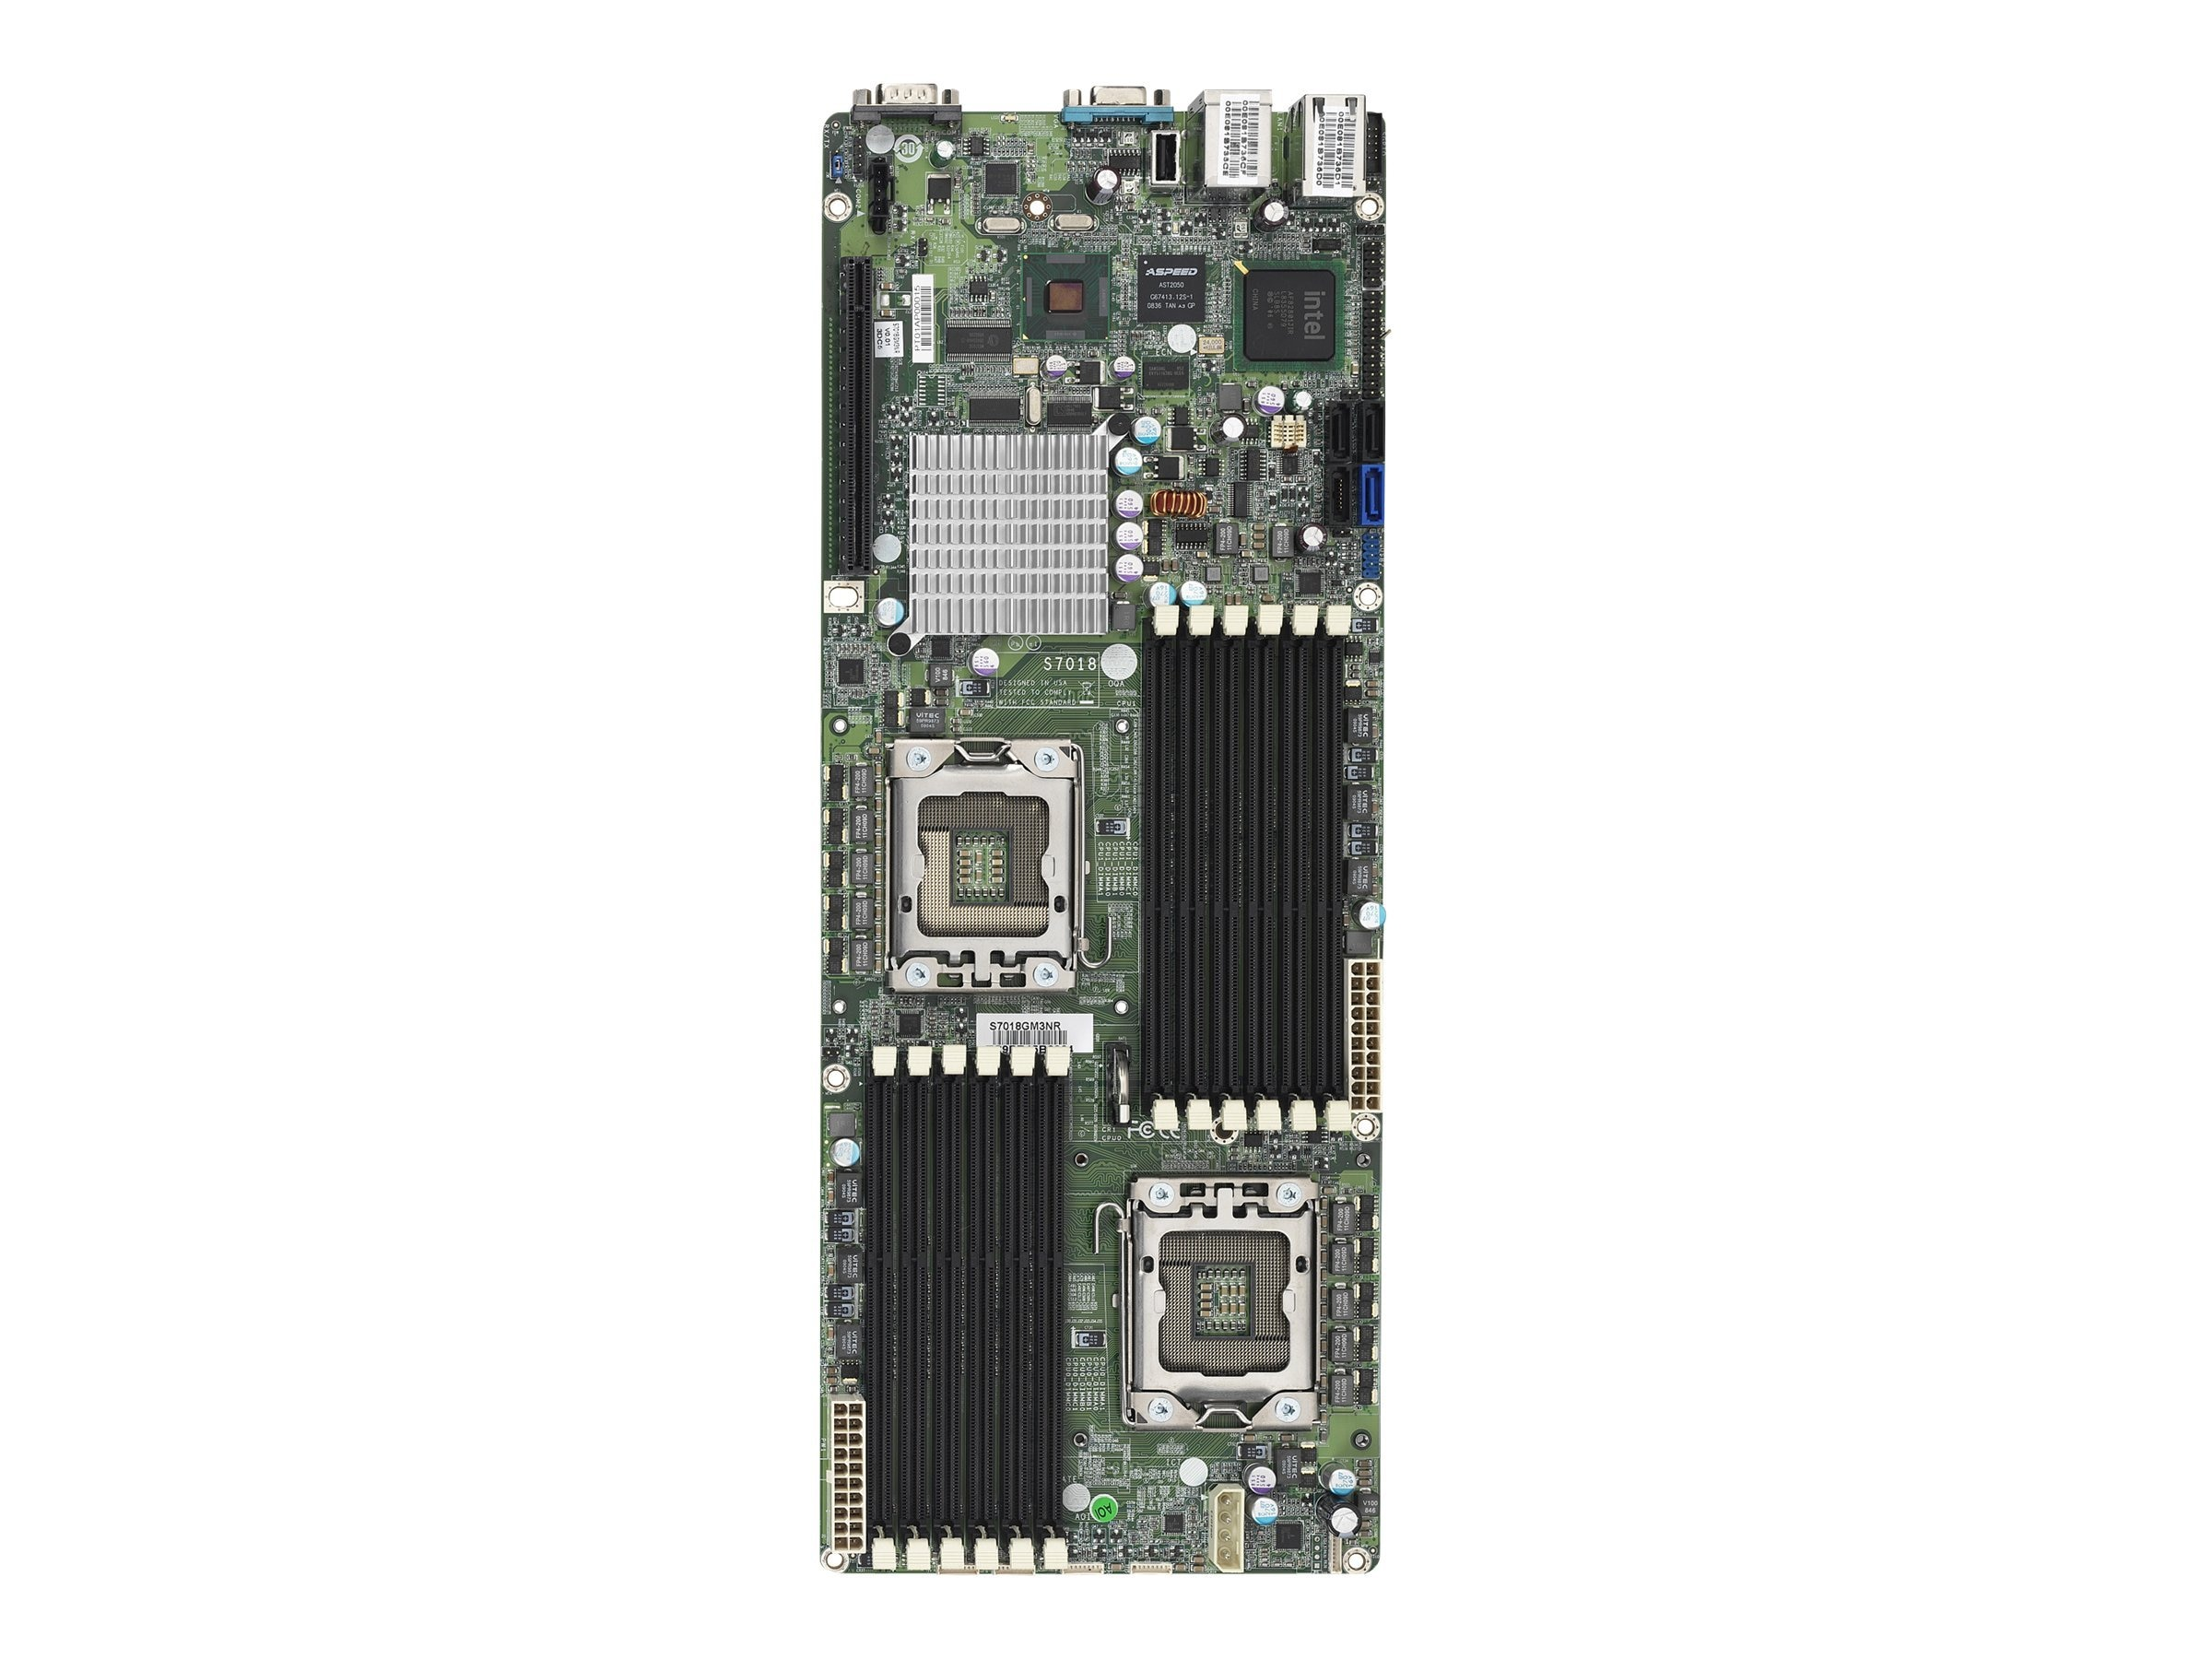 Tyan Motherboard, Intel 5500, Dual Xeon 5500, Proprietary, Max 96GB DDR3, PCIEX16, 3GBE, Video, SATA, S7018GM3NR